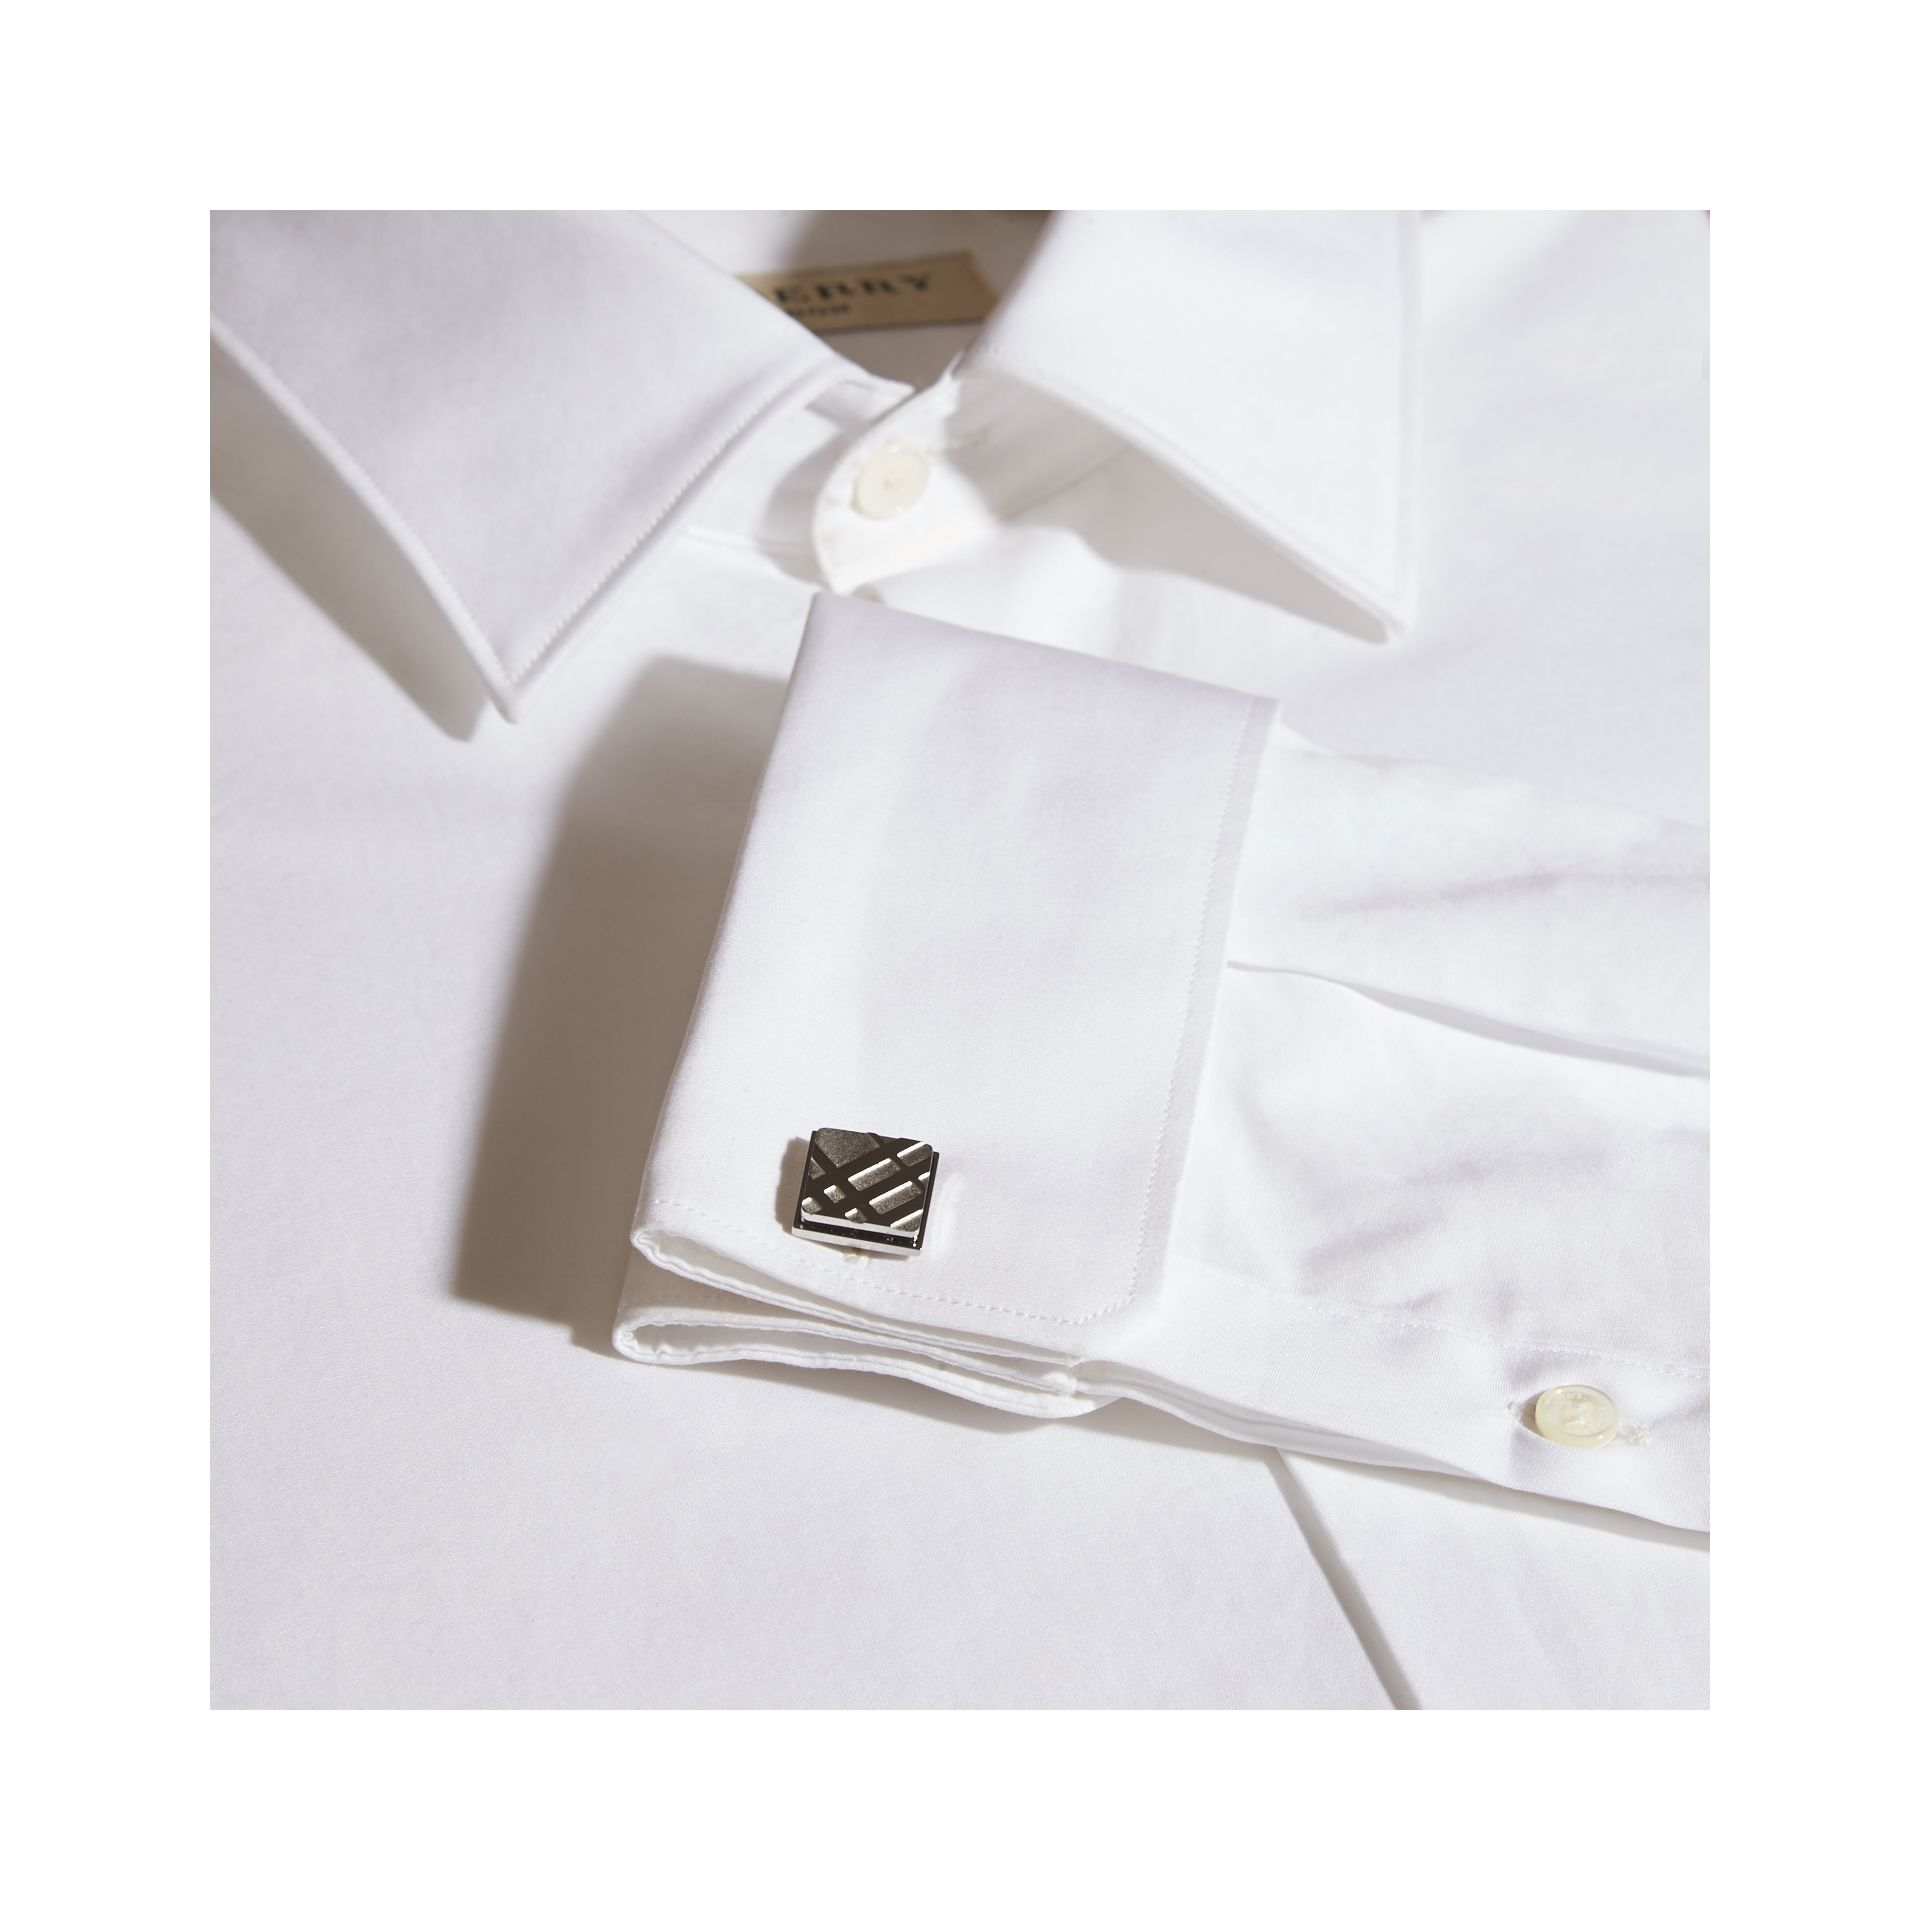 Check-engraved Square Cufflinks in Silver - Men | Burberry Hong Kong - gallery image 2